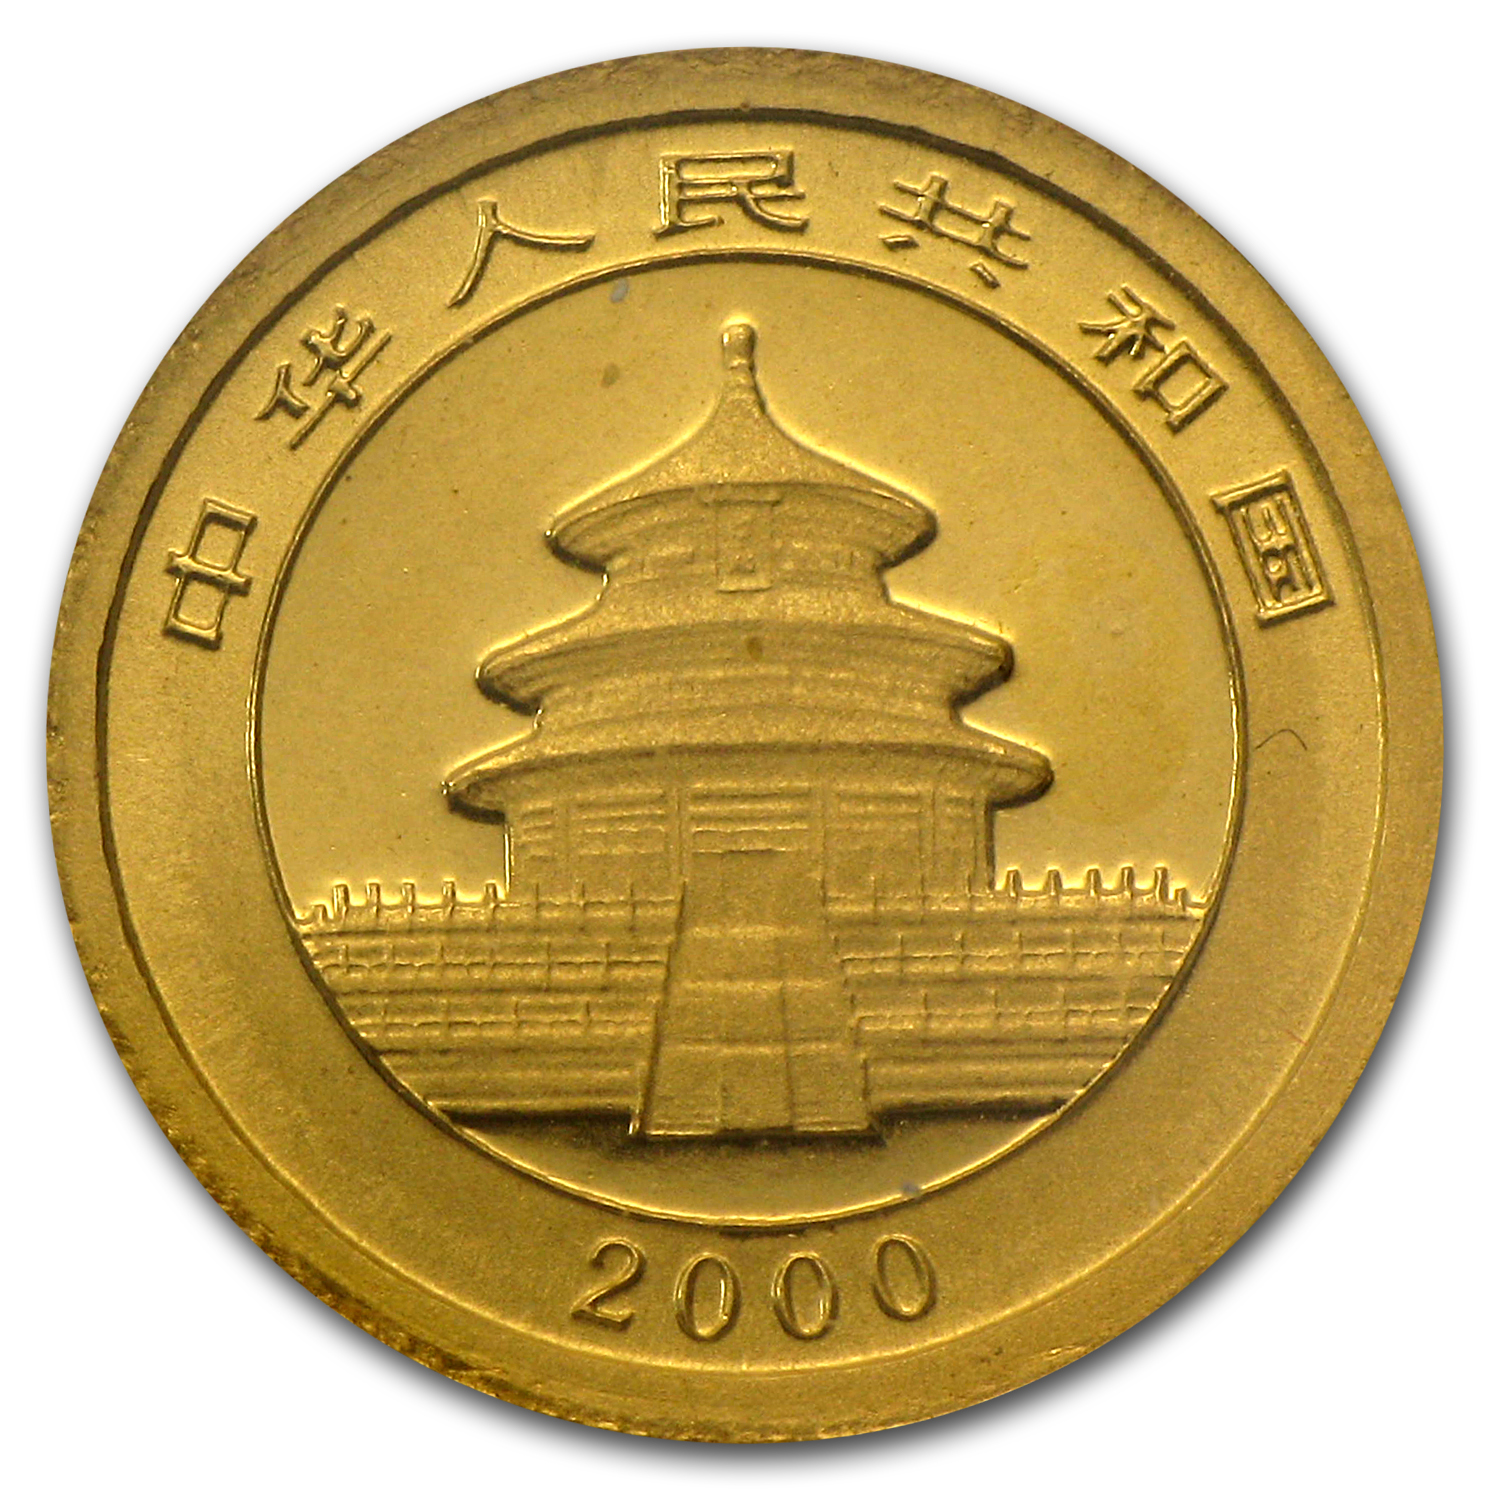 2000 China 1/20 oz Gold Panda Frosted BU (Sealed)